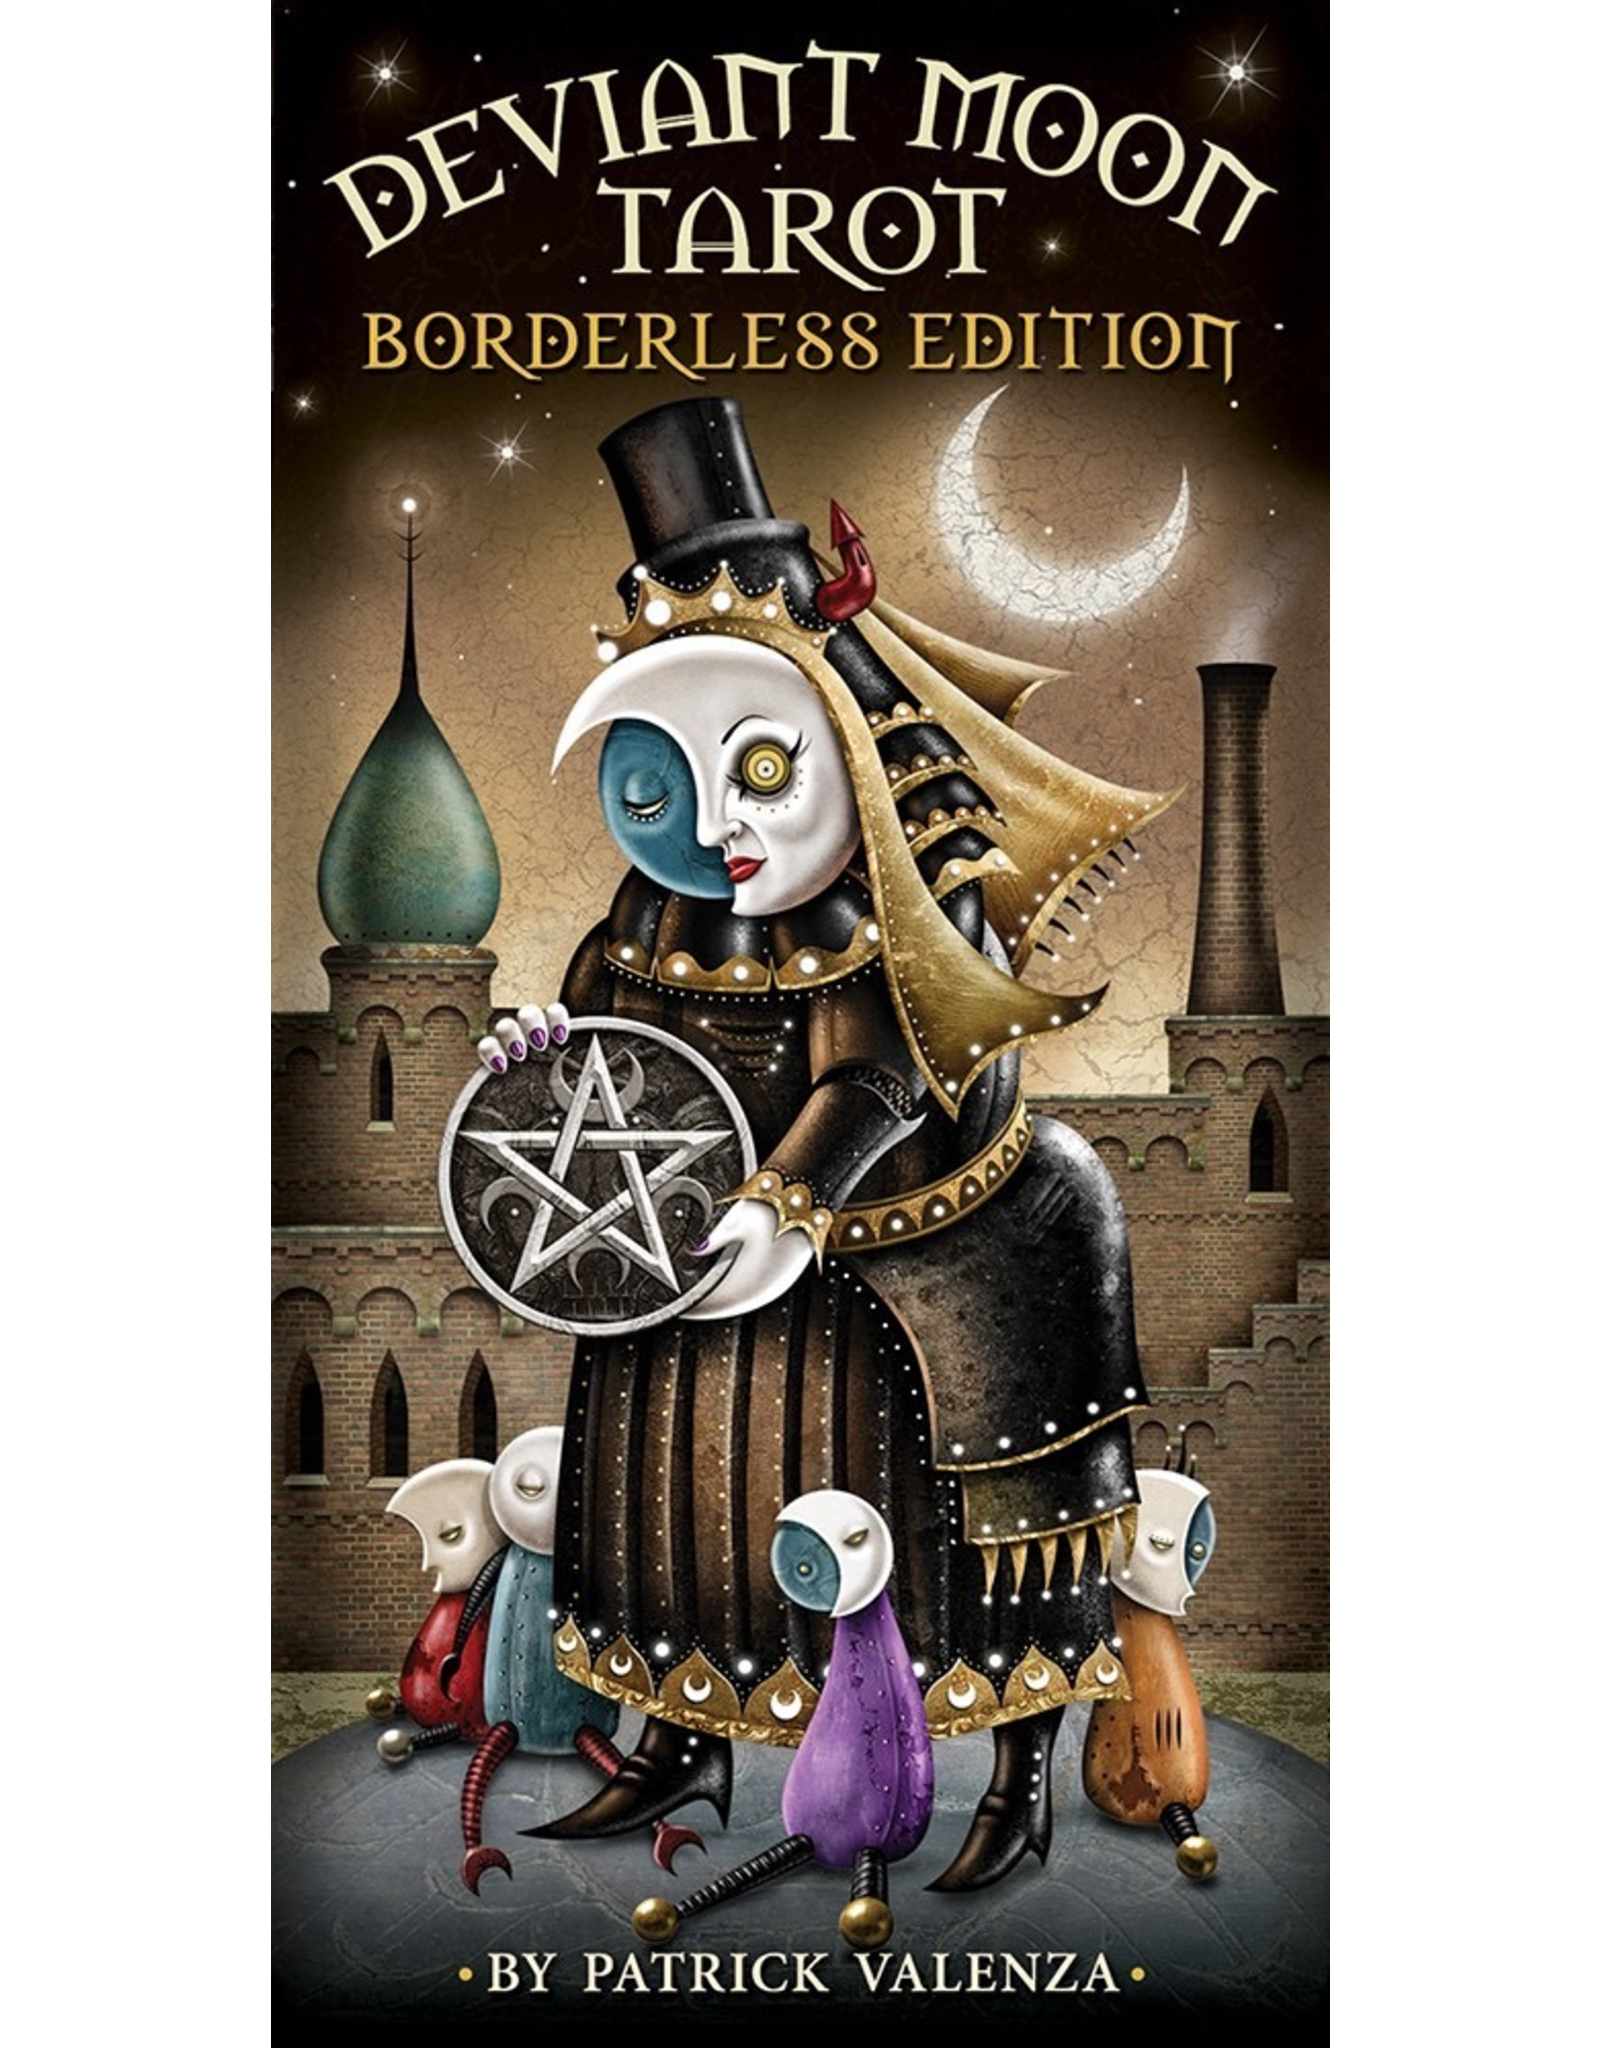 US Games Deviant Moon Tarot Bordeless Edition